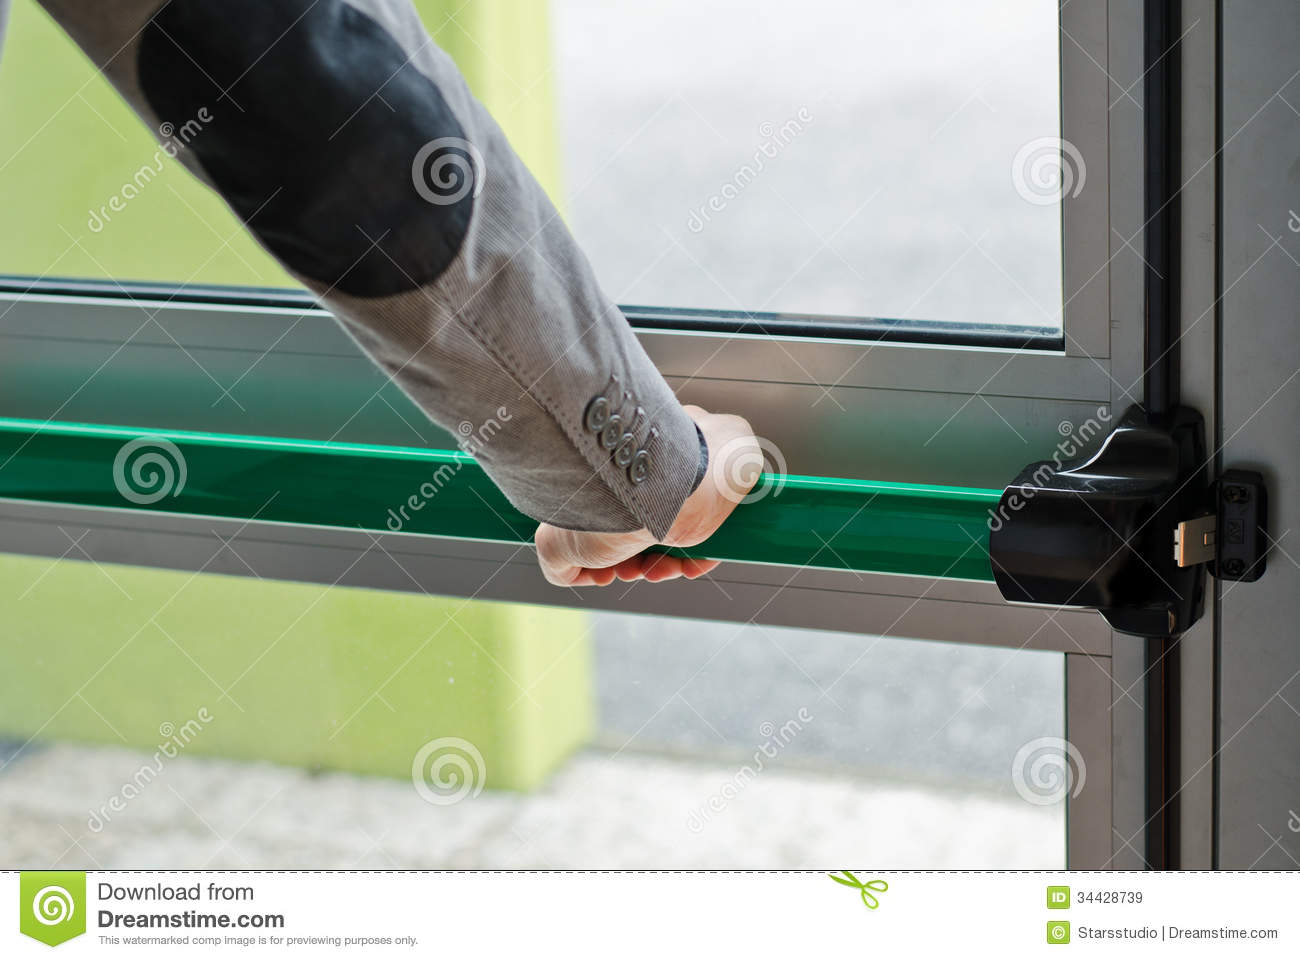 Hand Pressing Panic Push Bar To Open Door Stock Image